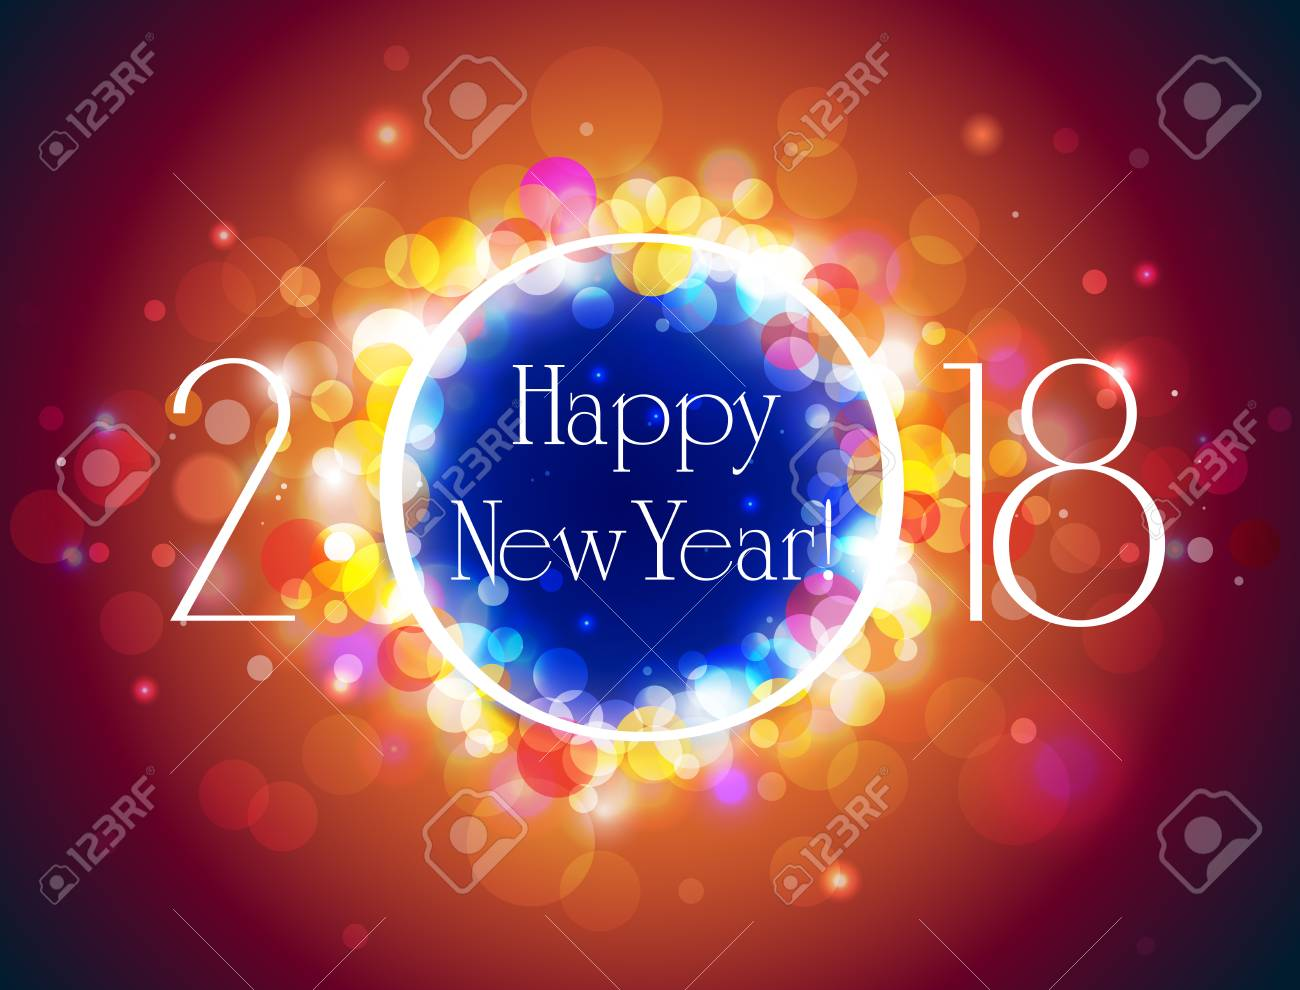 happy new year 2018 vector blue orange background with some space for text vector illustration